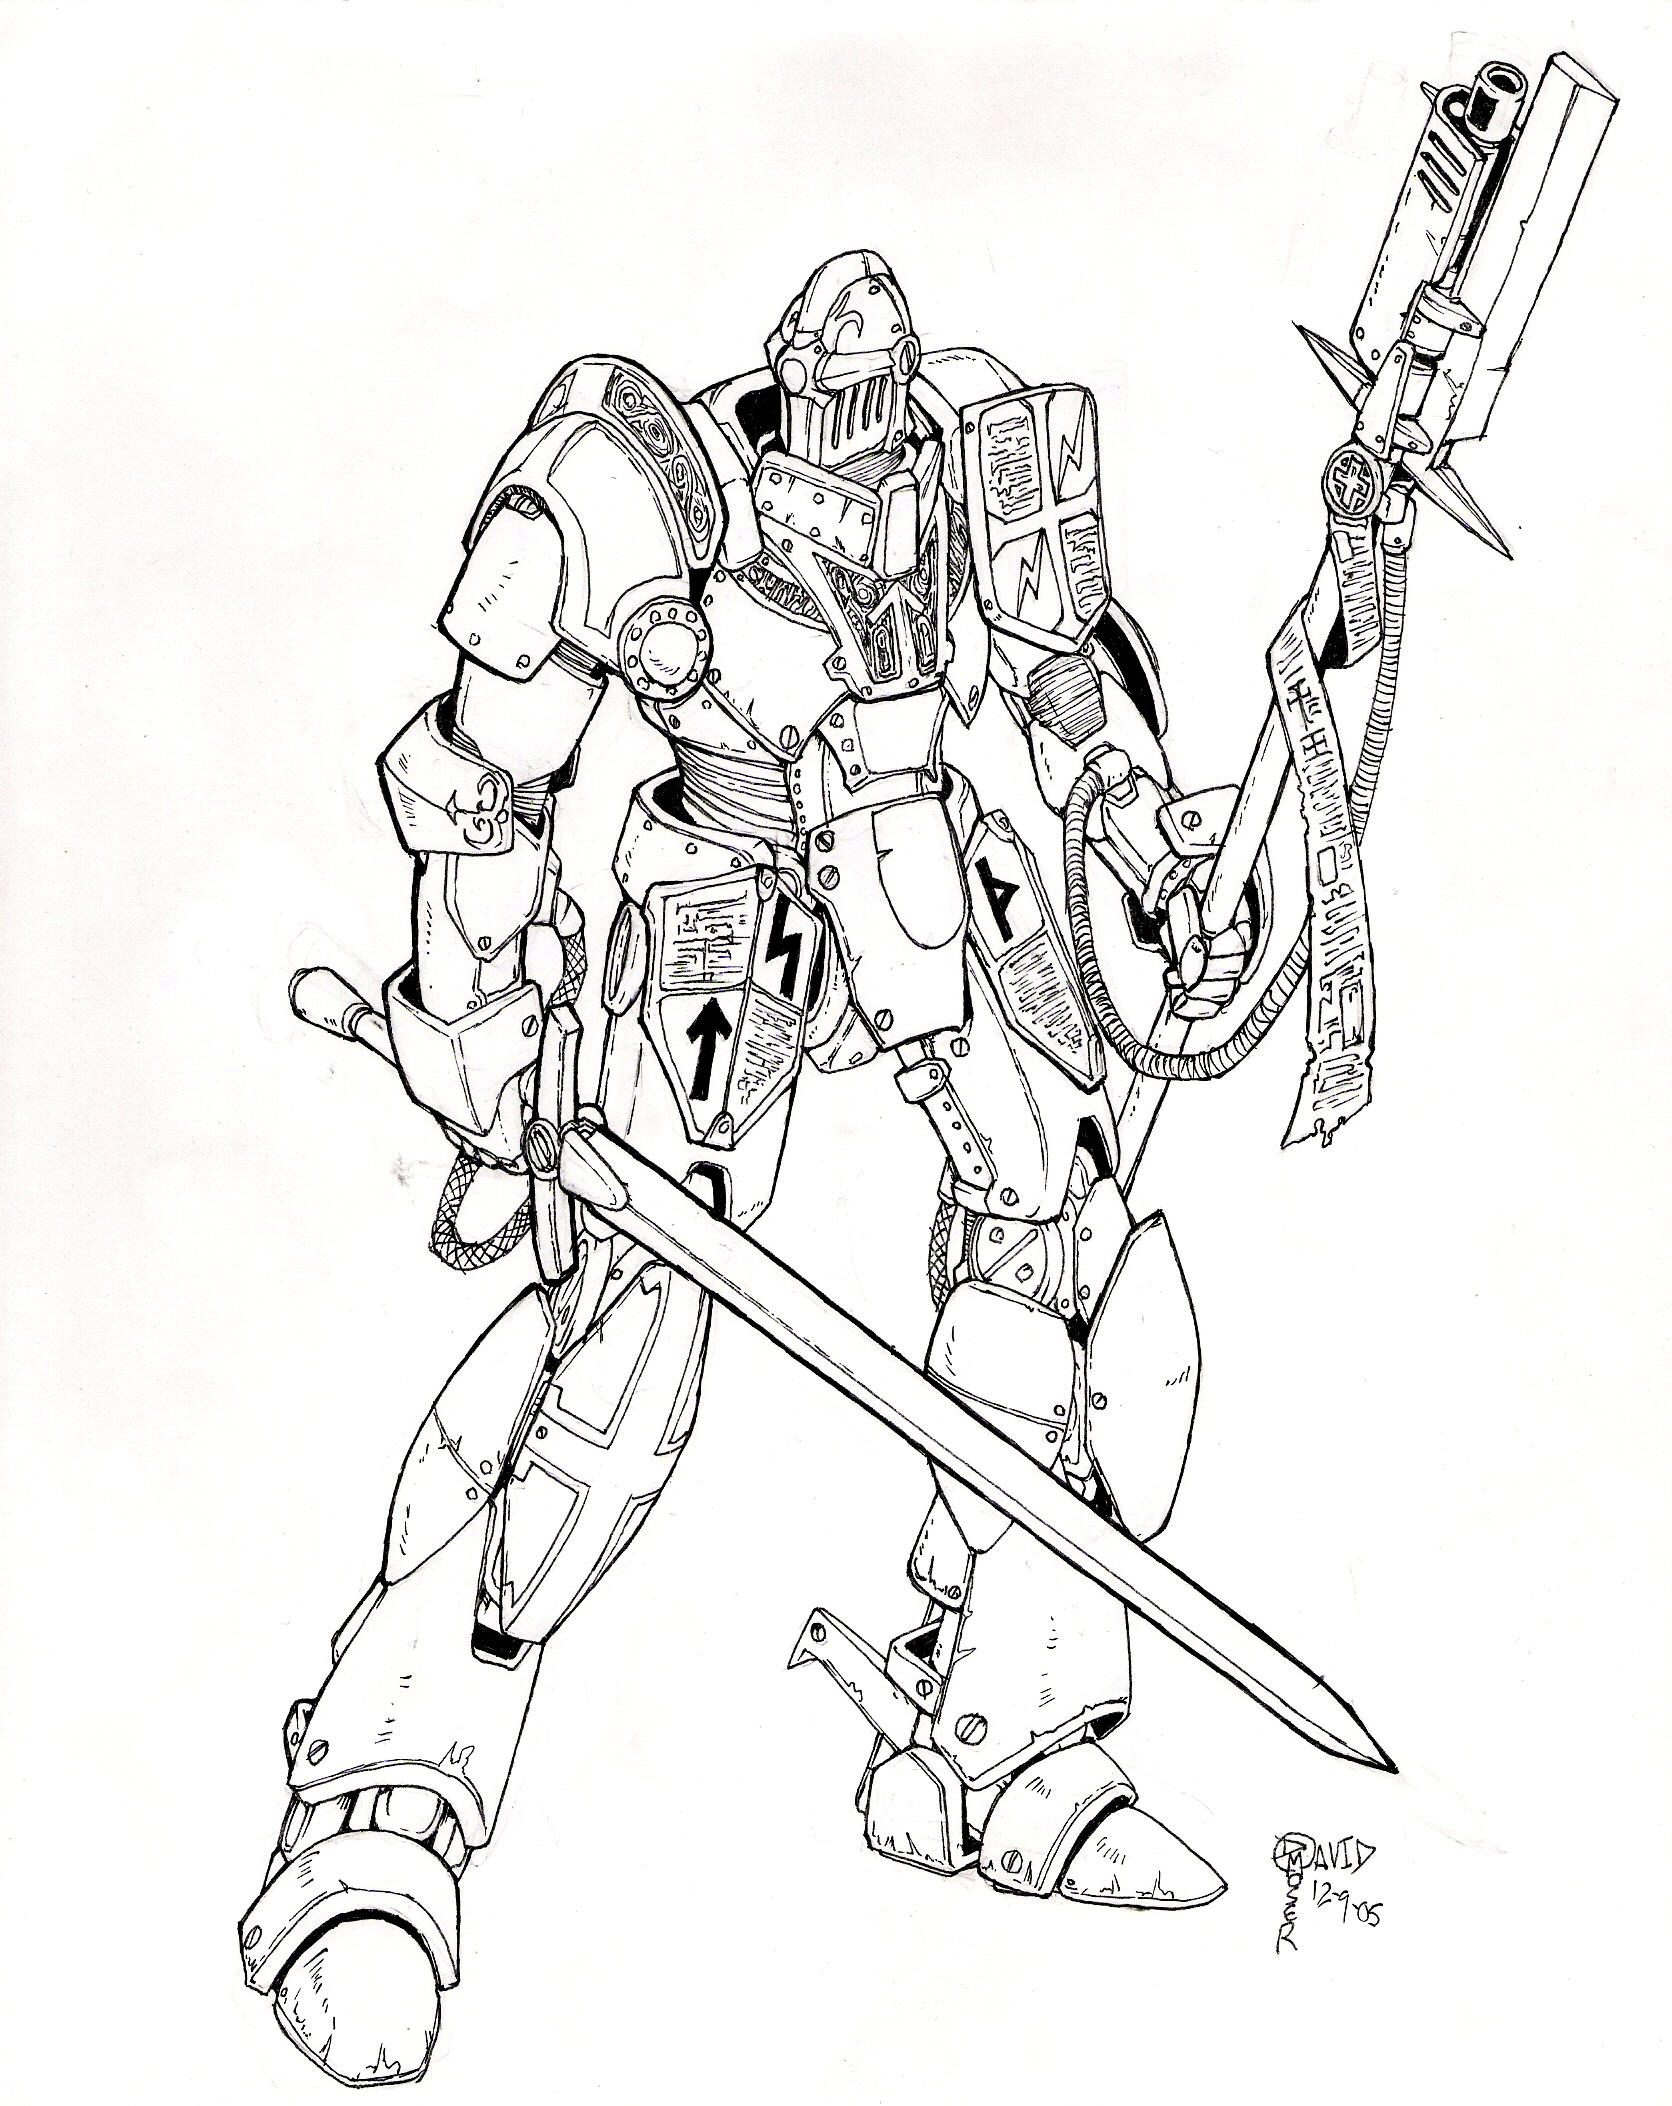 Holy Templar Engine: Inks by blackswordsman28